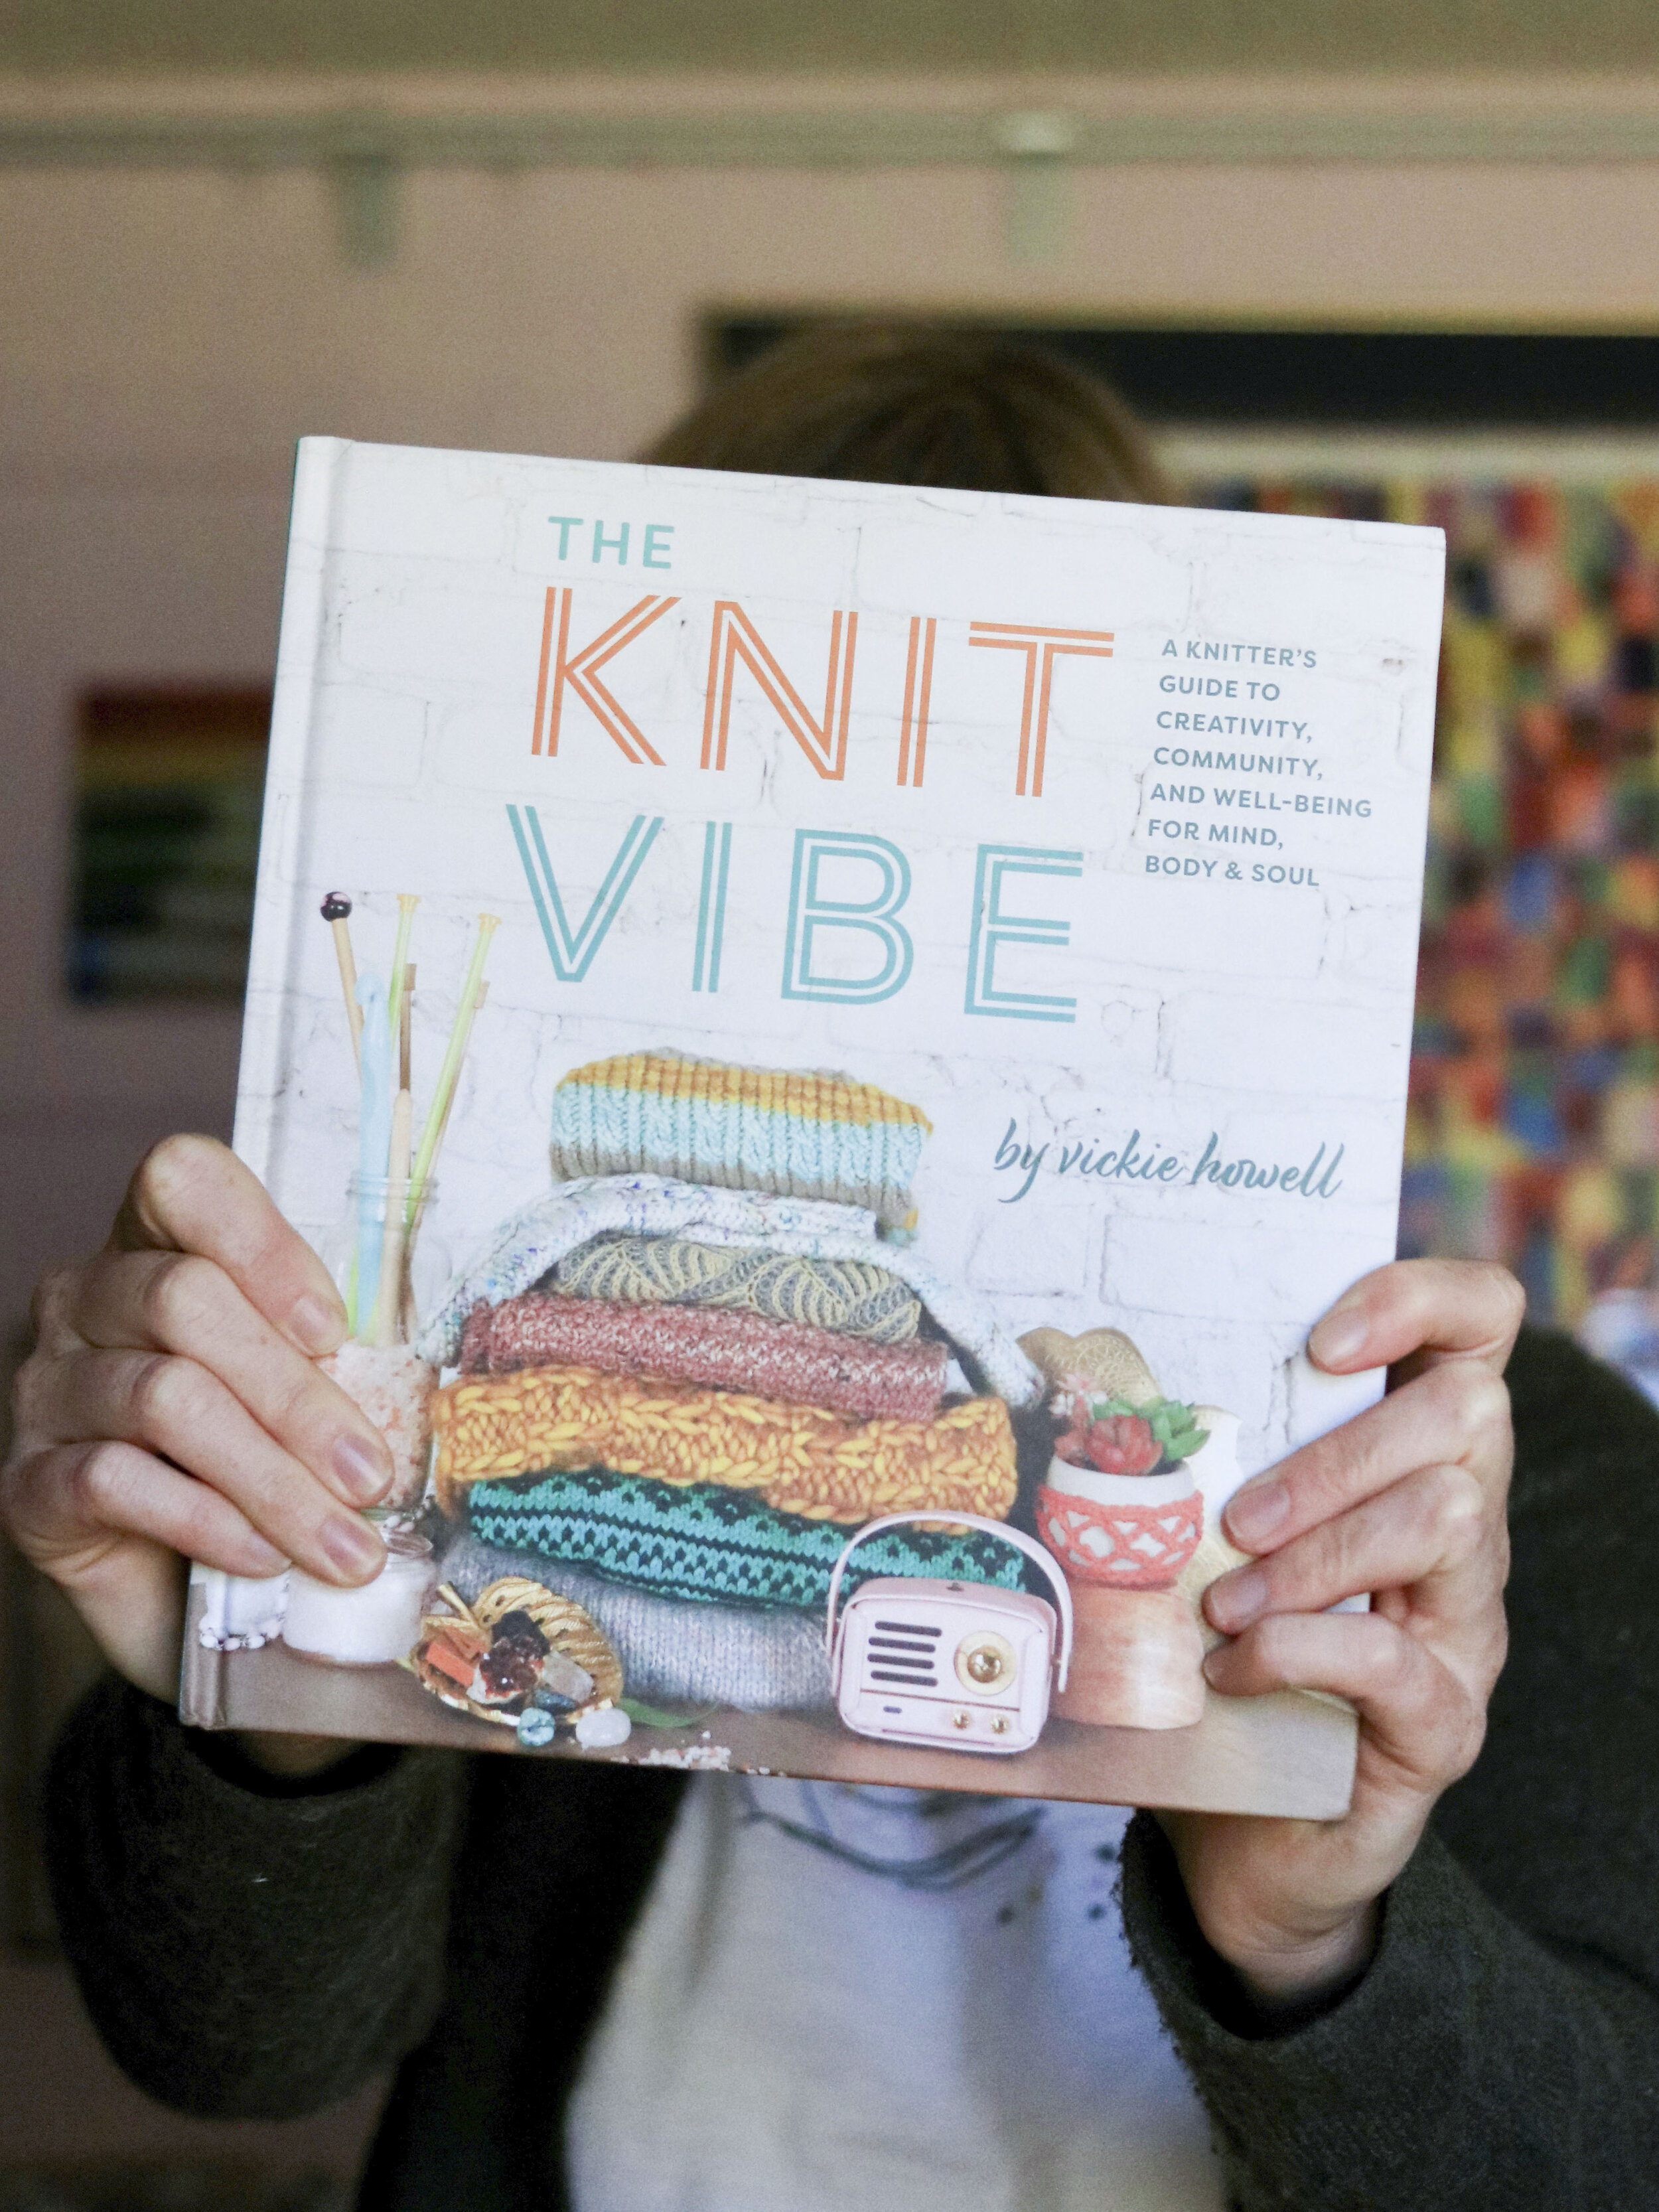 The Knit Vibe: A Knitter's Guide to Creativity, Community, and Well-being for the Mind, Body & Soul by Vickie Howell